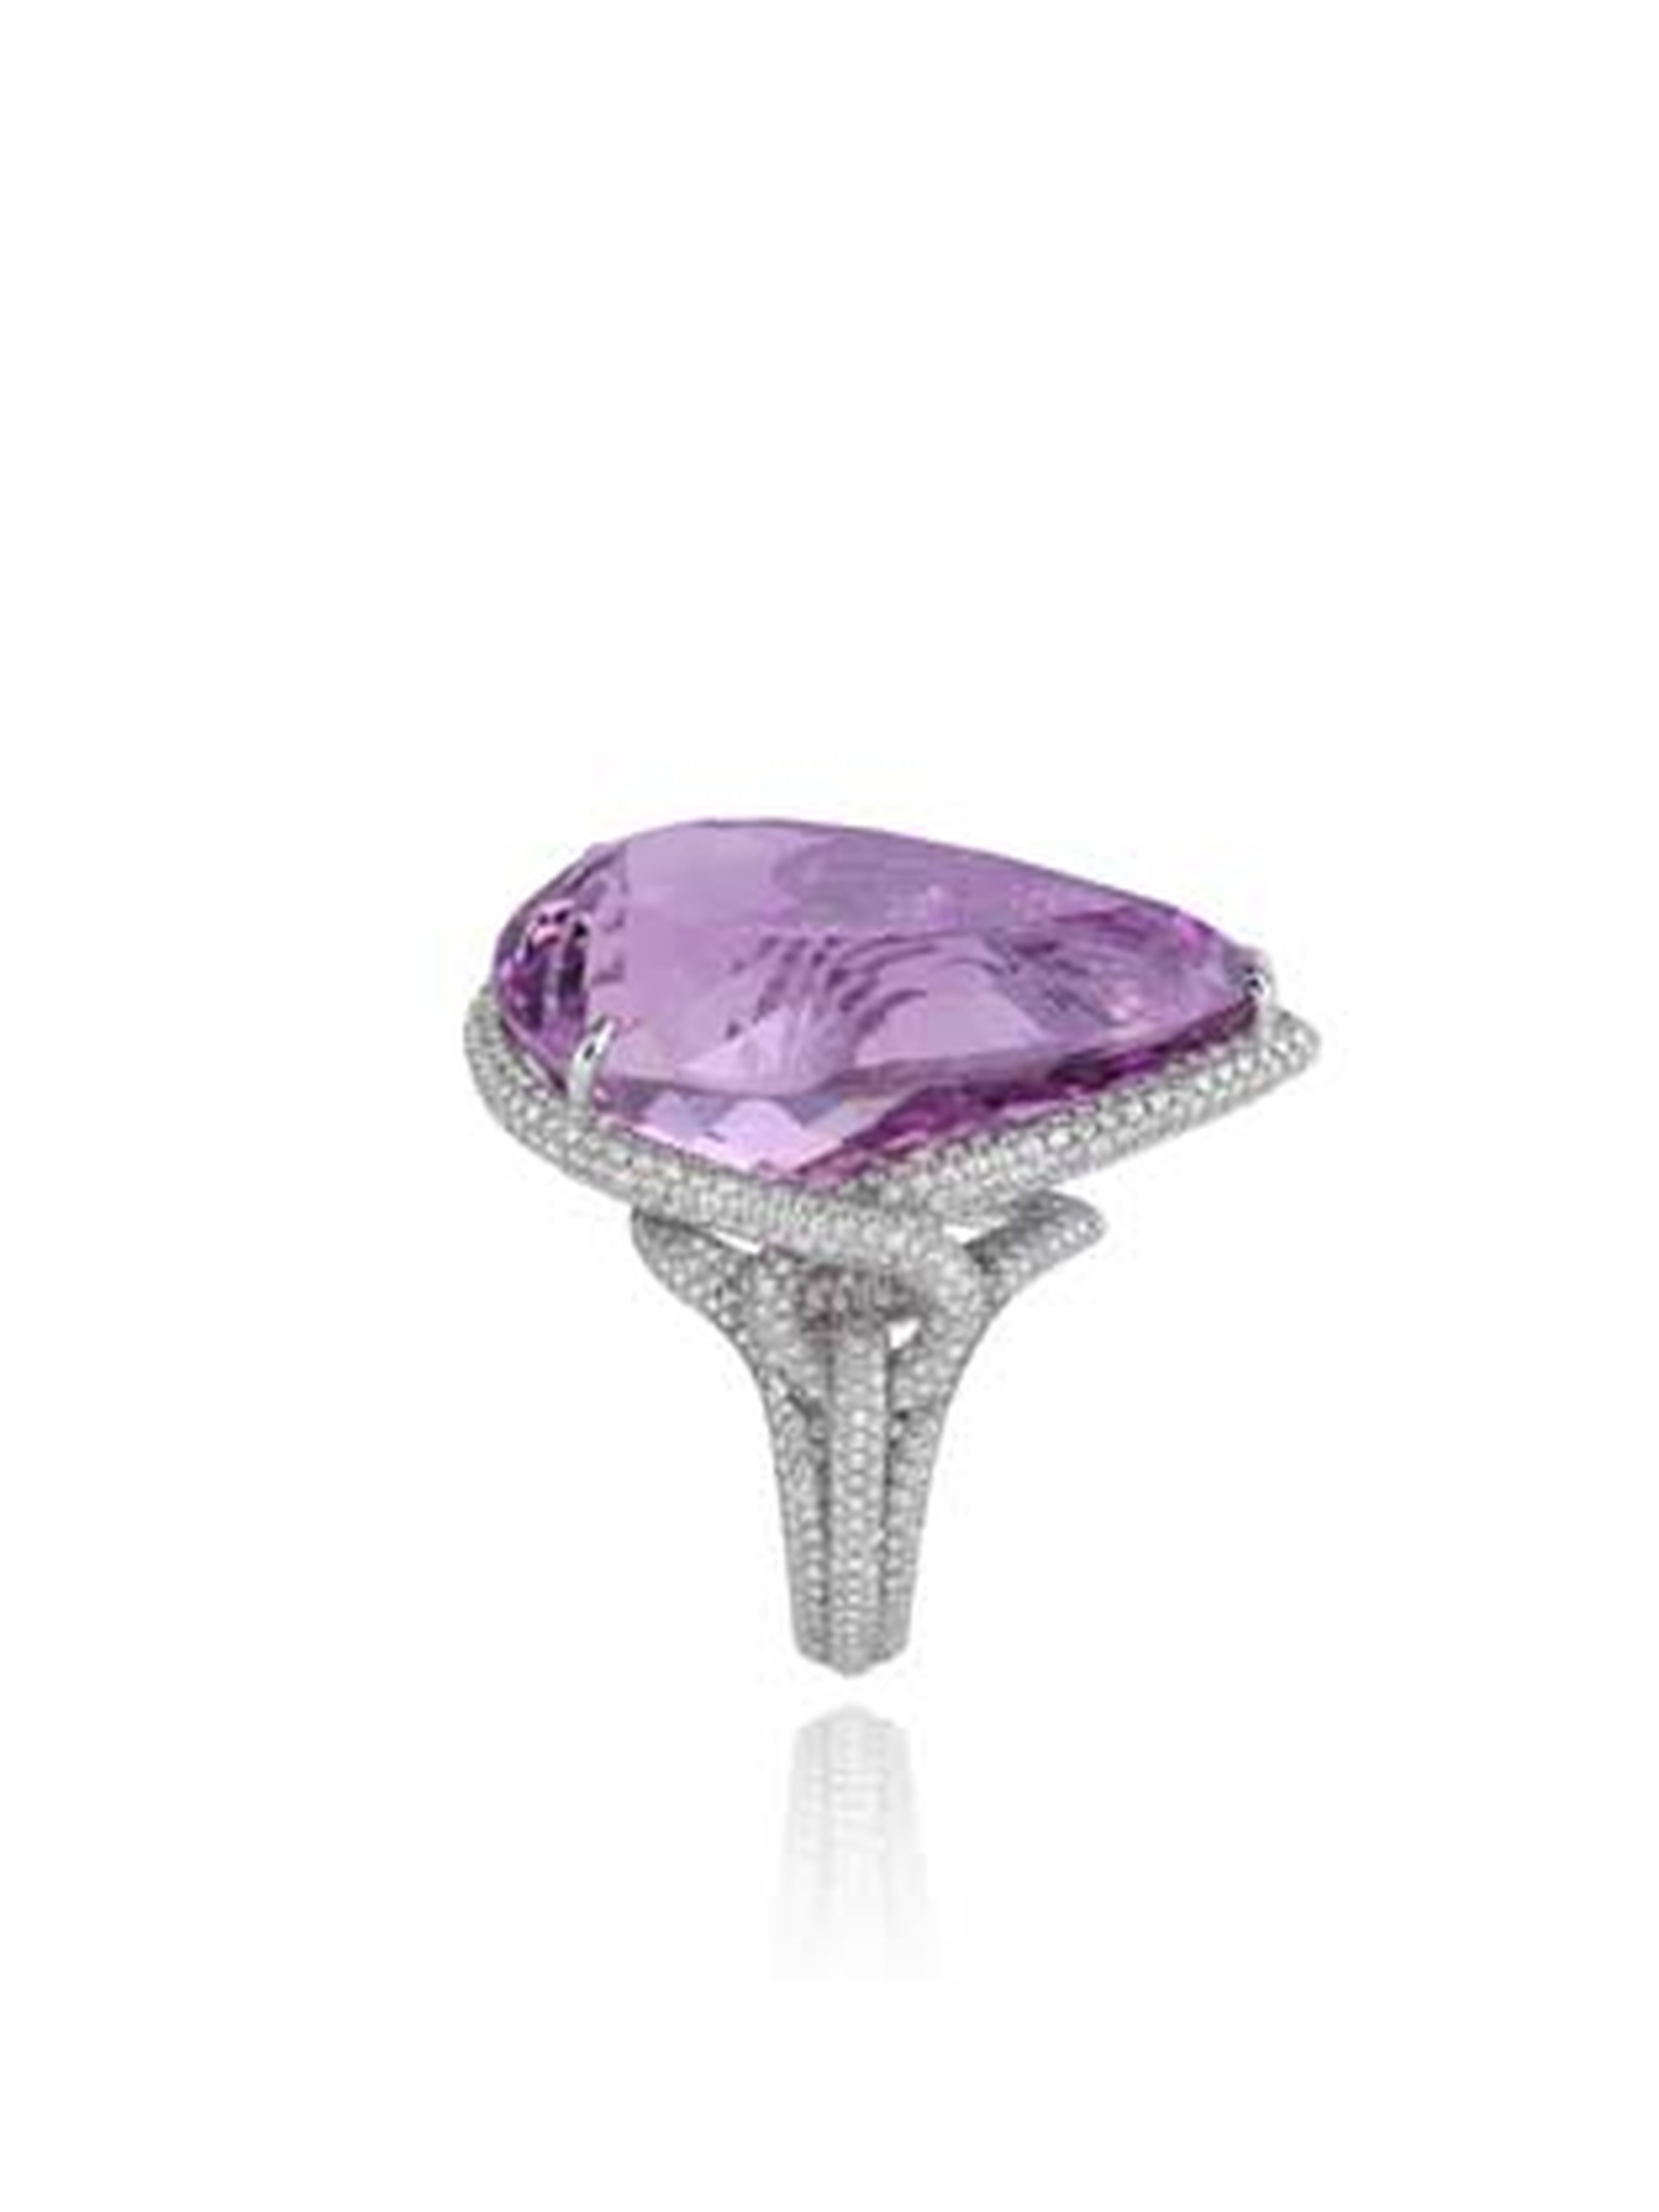 829174-1002 Kunzite Ring  from the Red Carpet Collection 2013.jpg